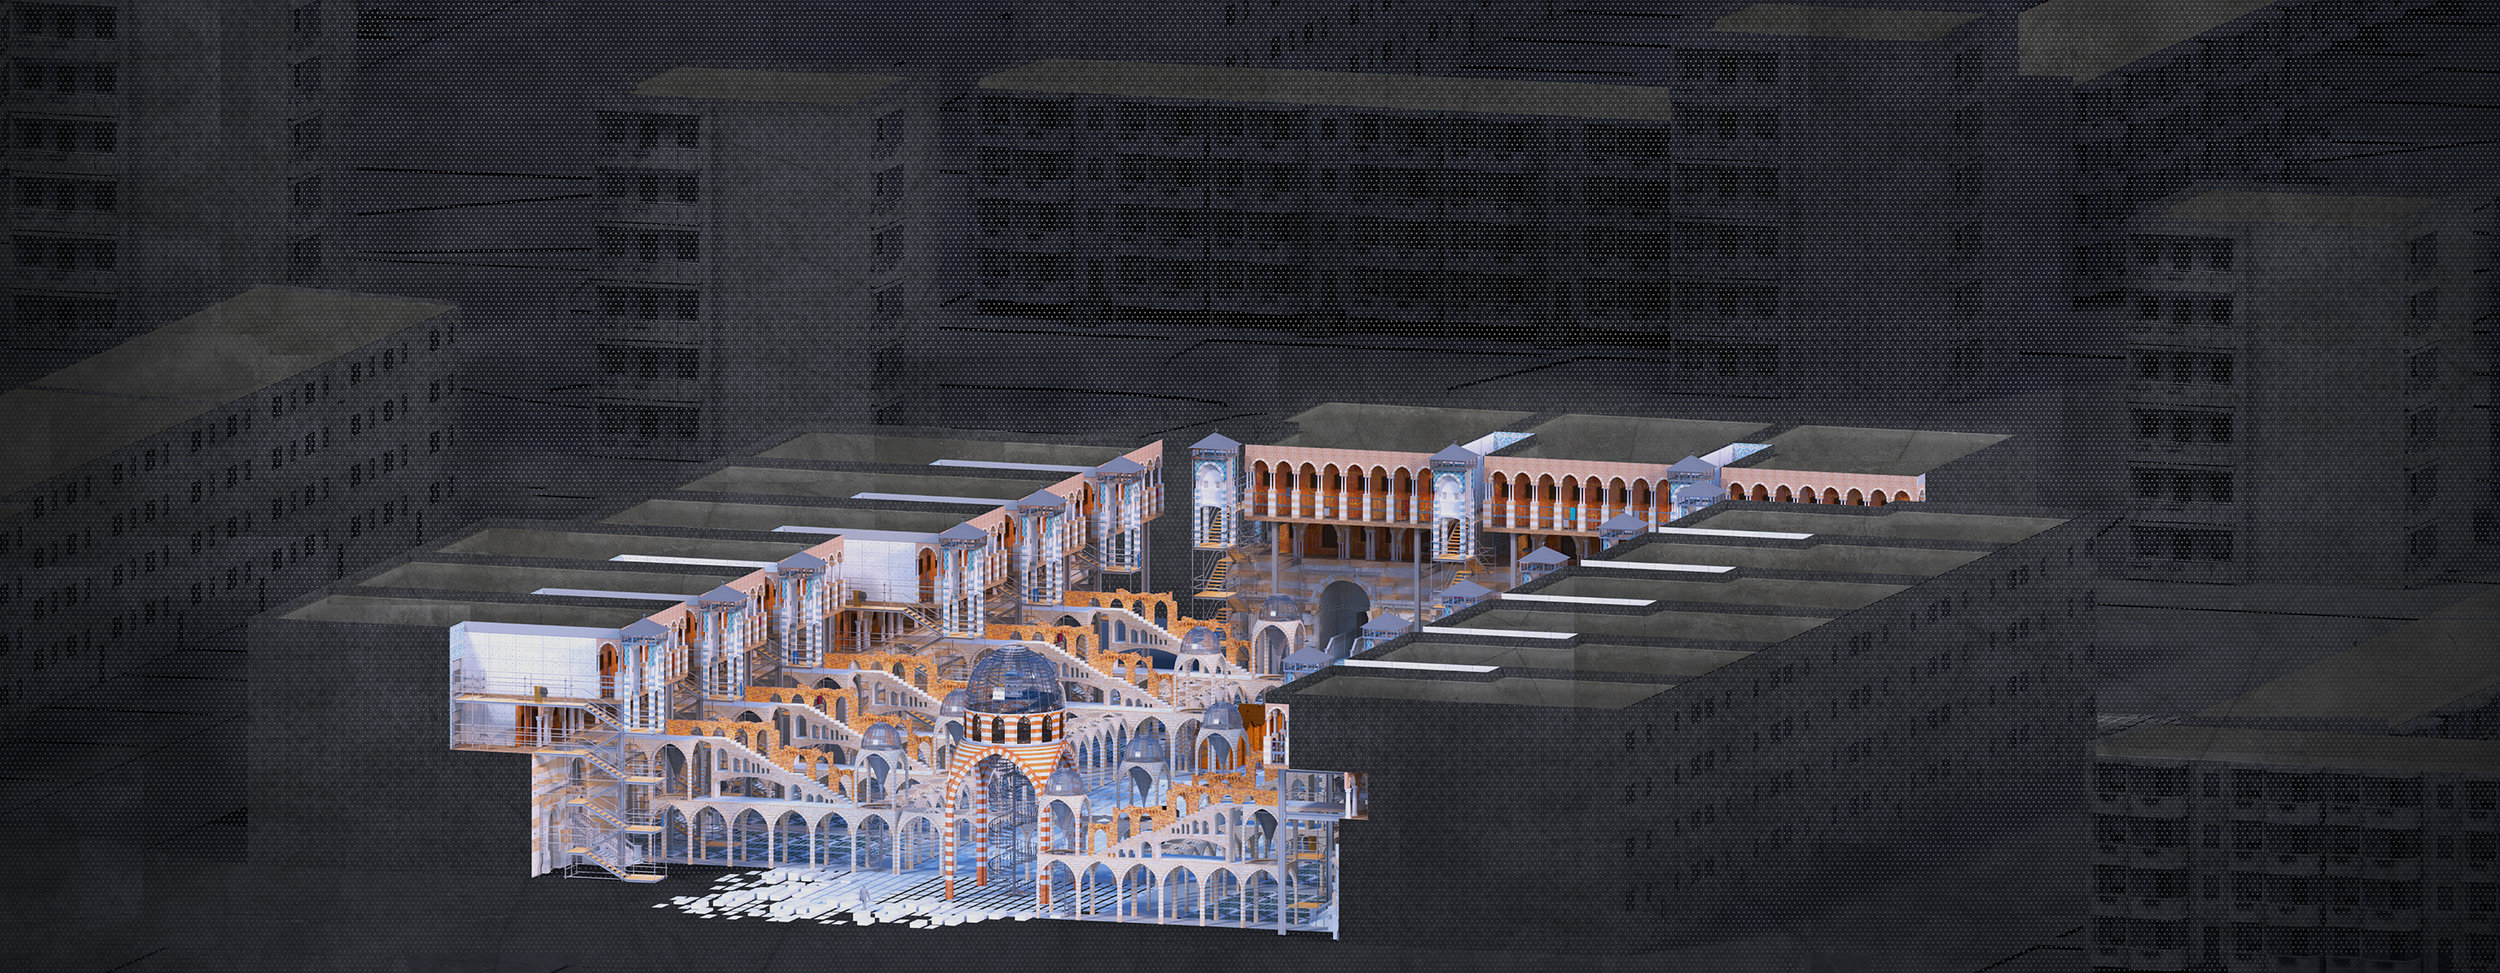 Axonometric of the building complex